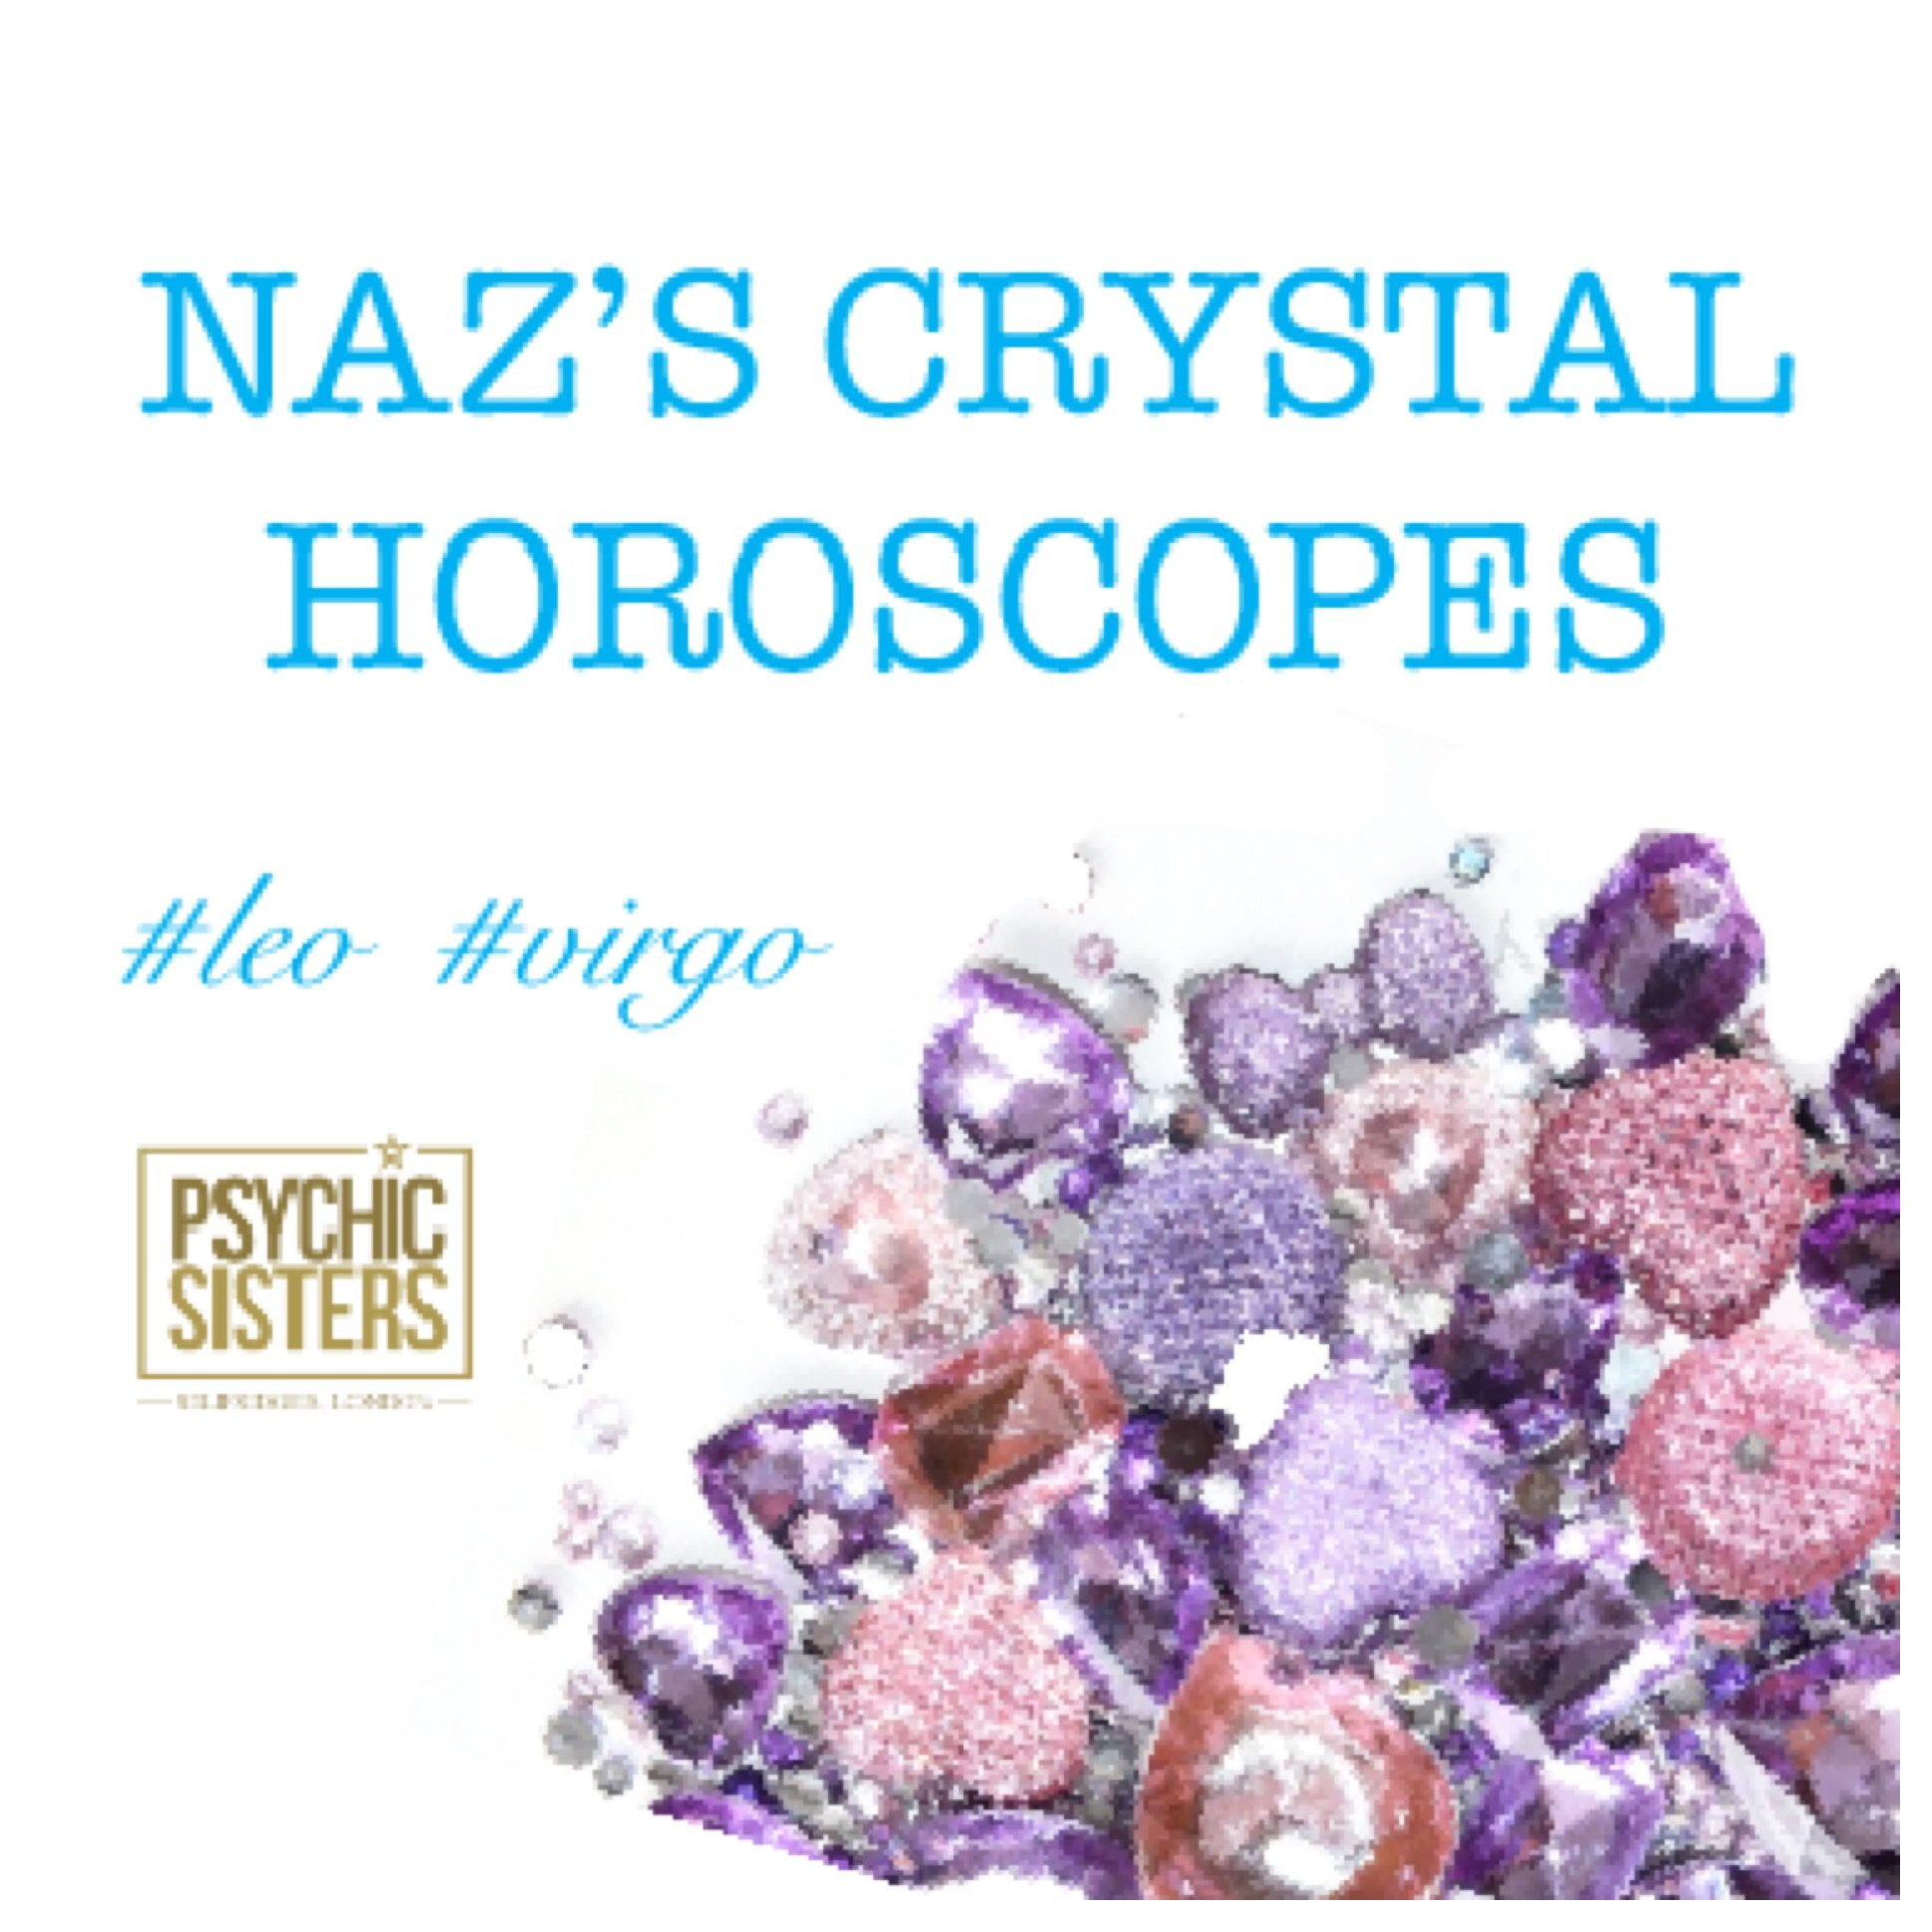 Naz's crystal horoscopes 1st - 6th April 2018